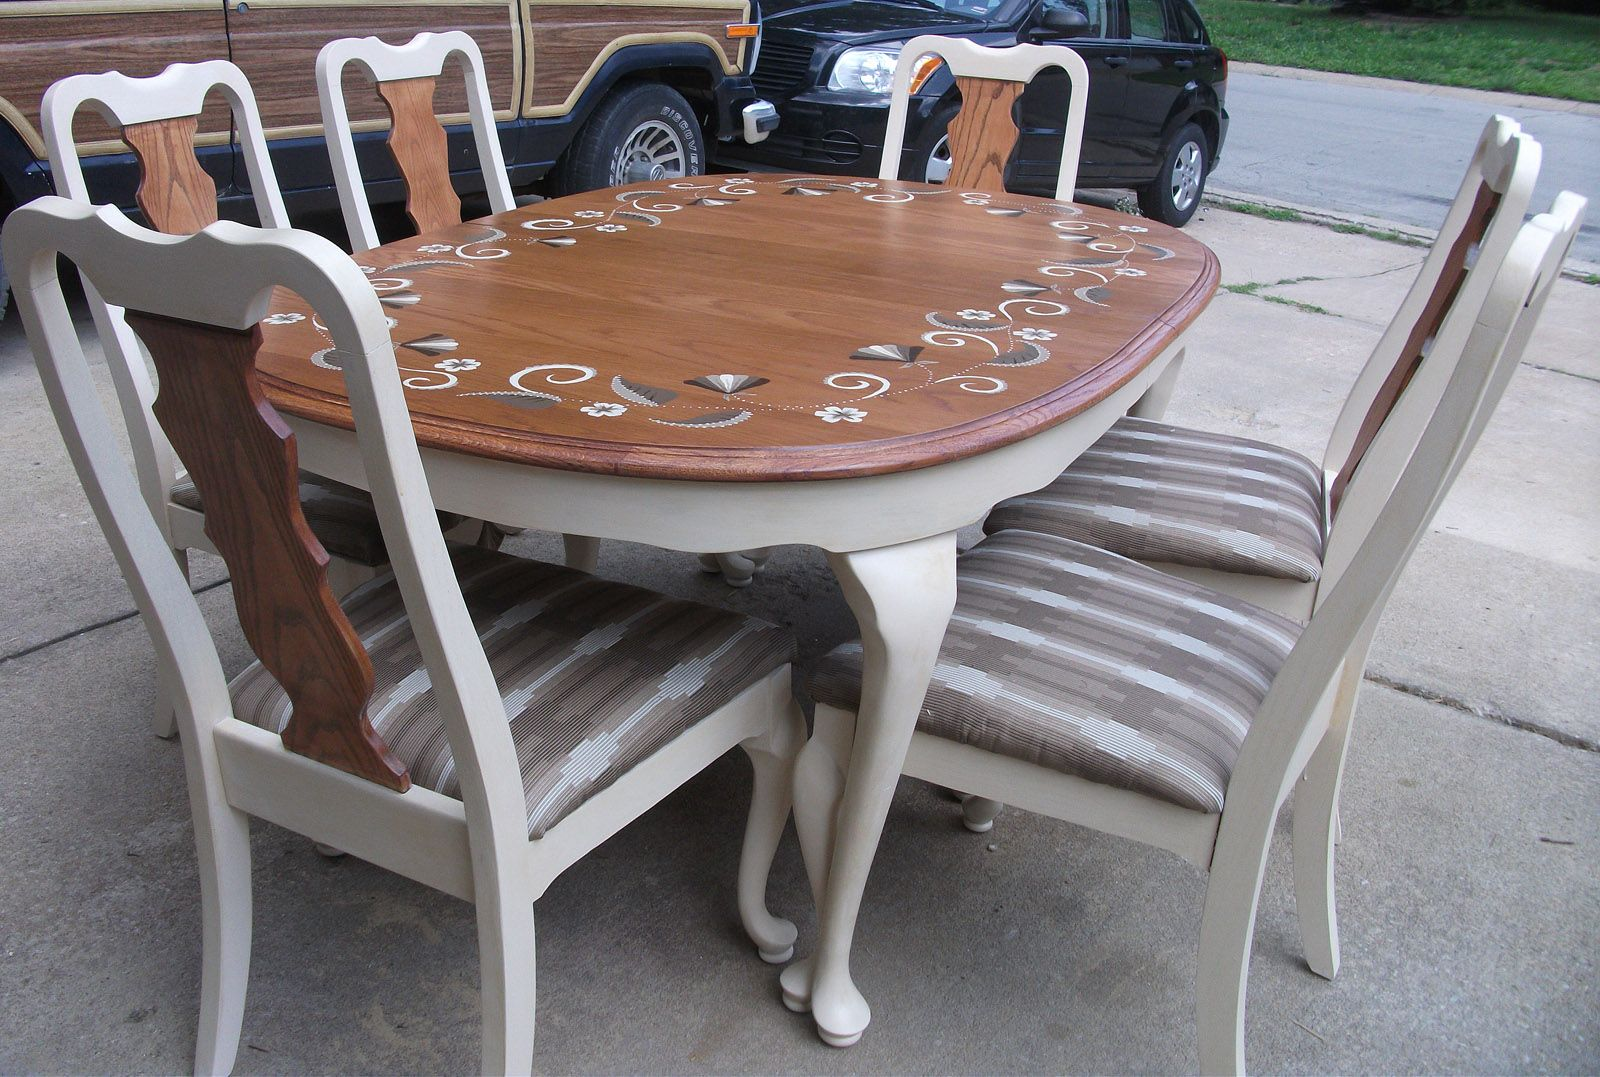 bess dining table with six chairs painted a cream color on hand painted dining room tables id=21620